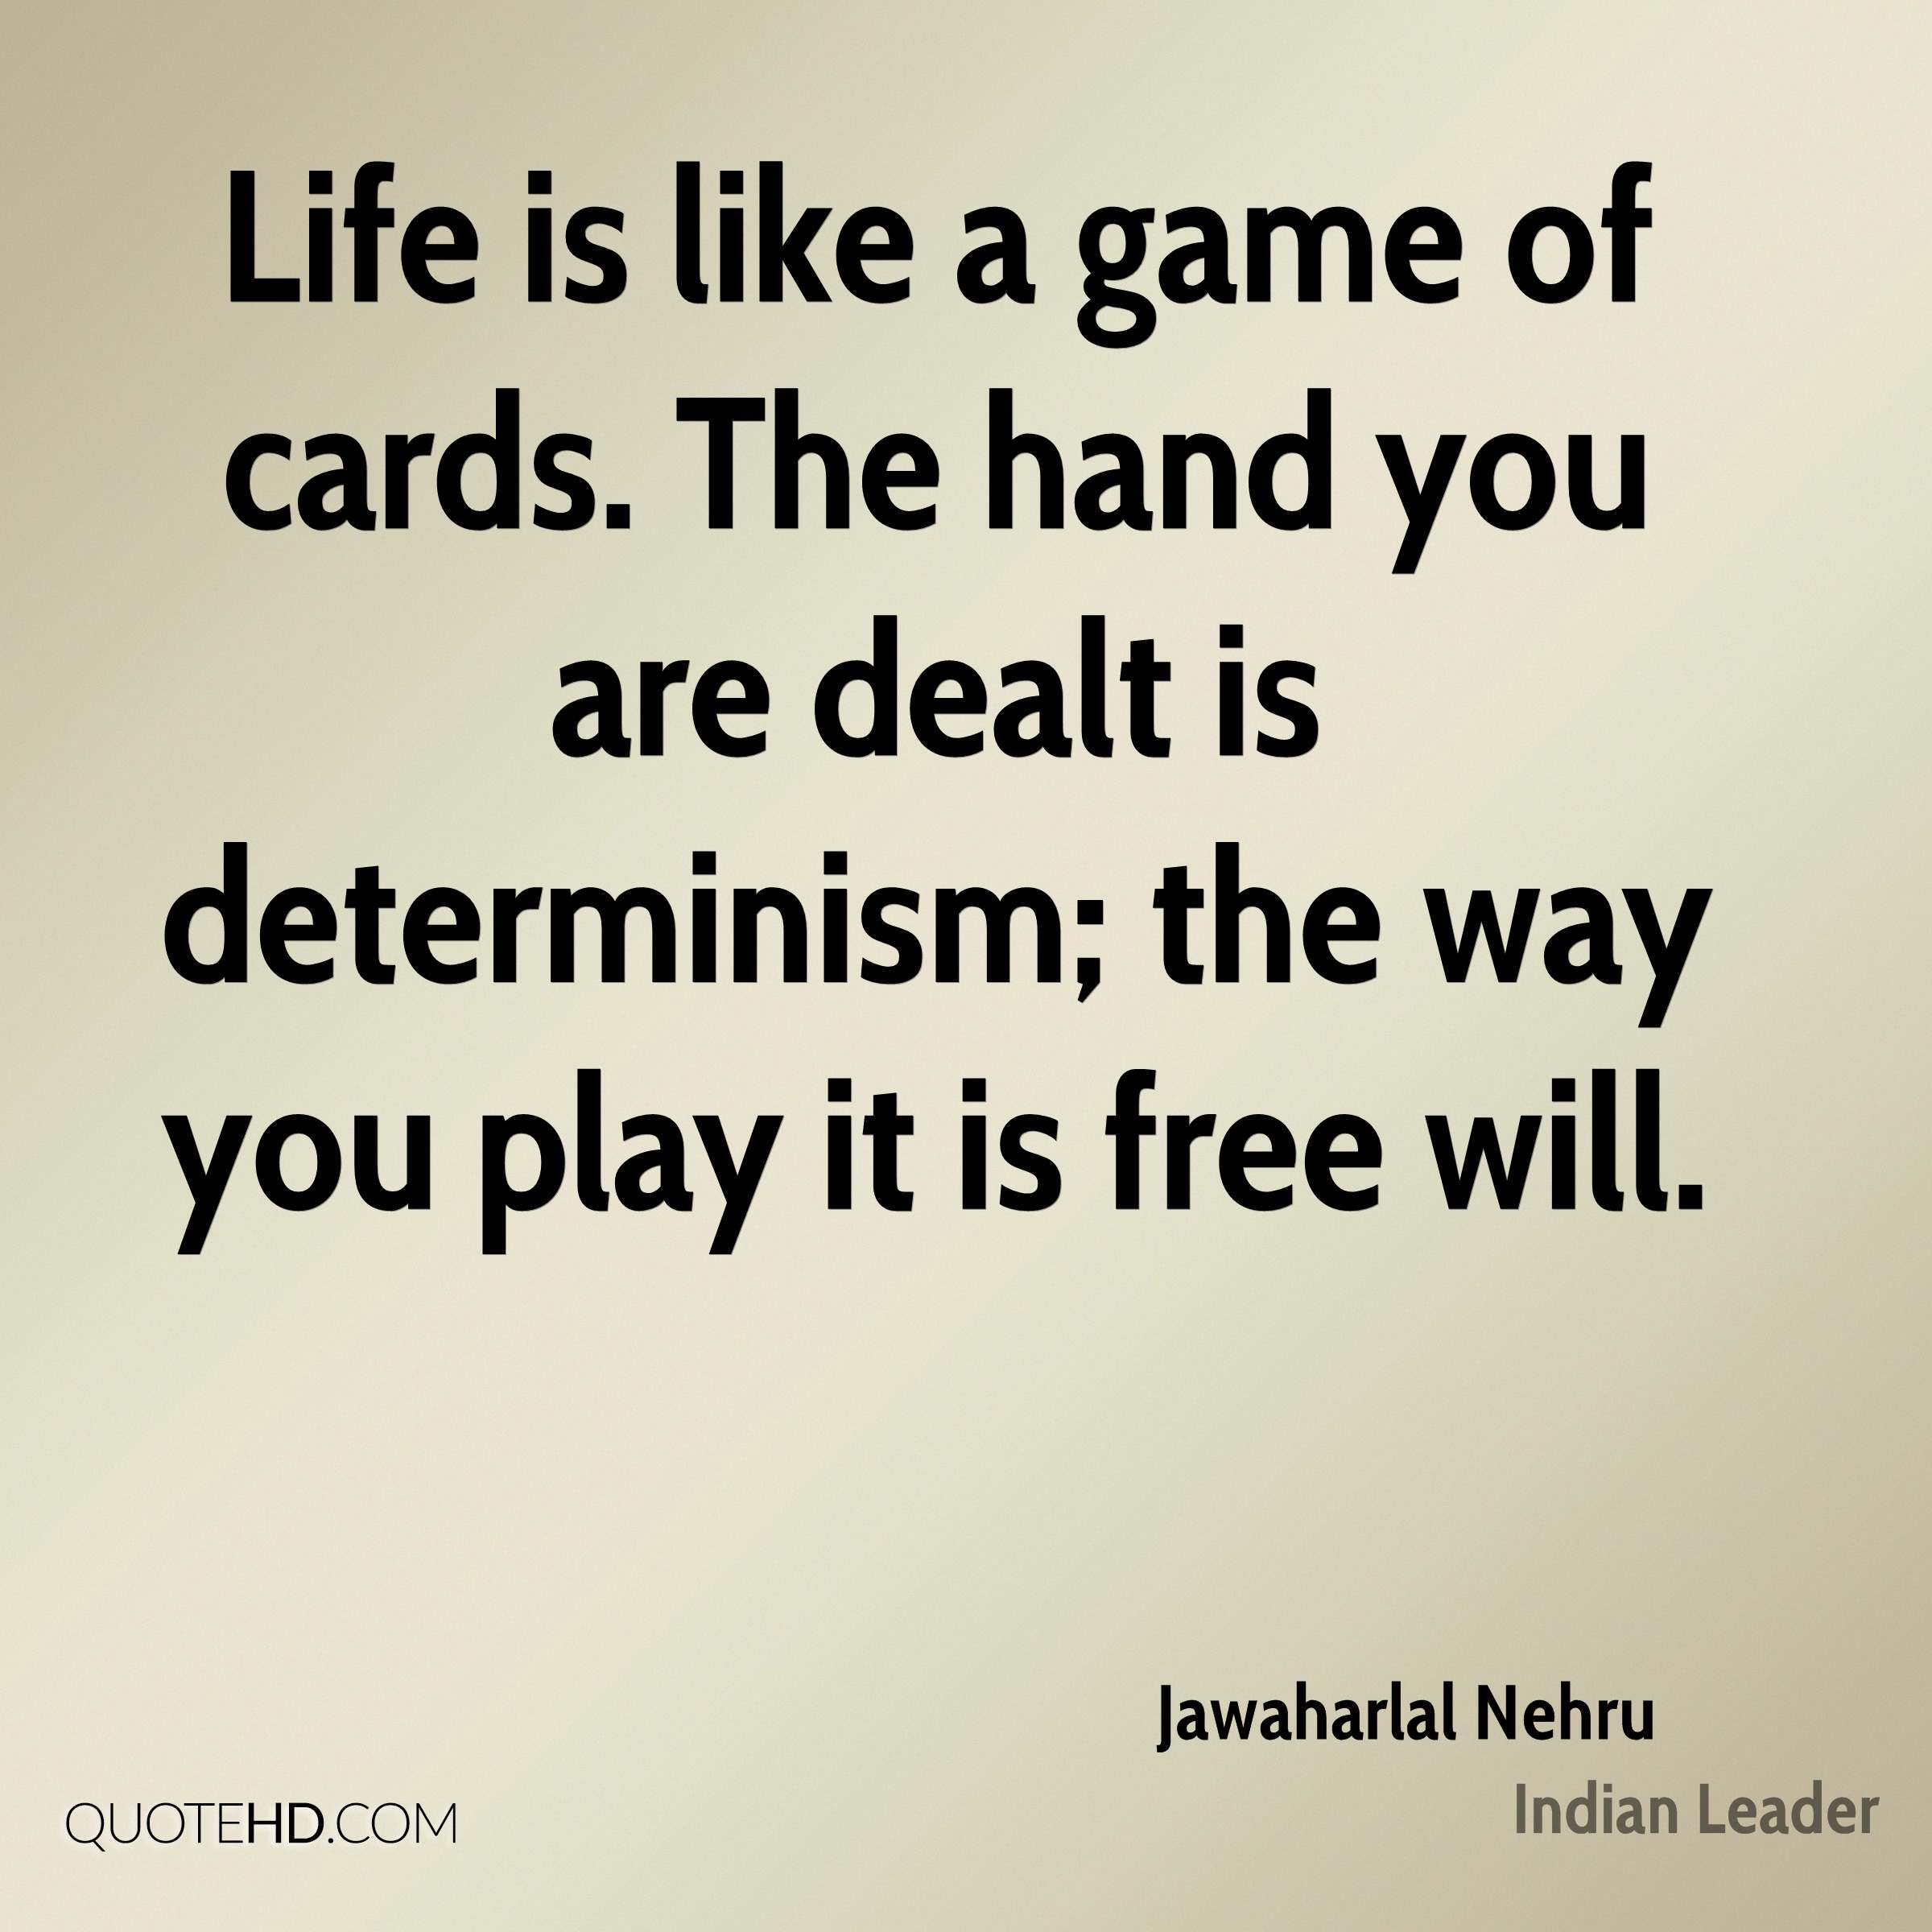 Free Quotes About Life Jawaharlal Nehru Quotes  Quotehd